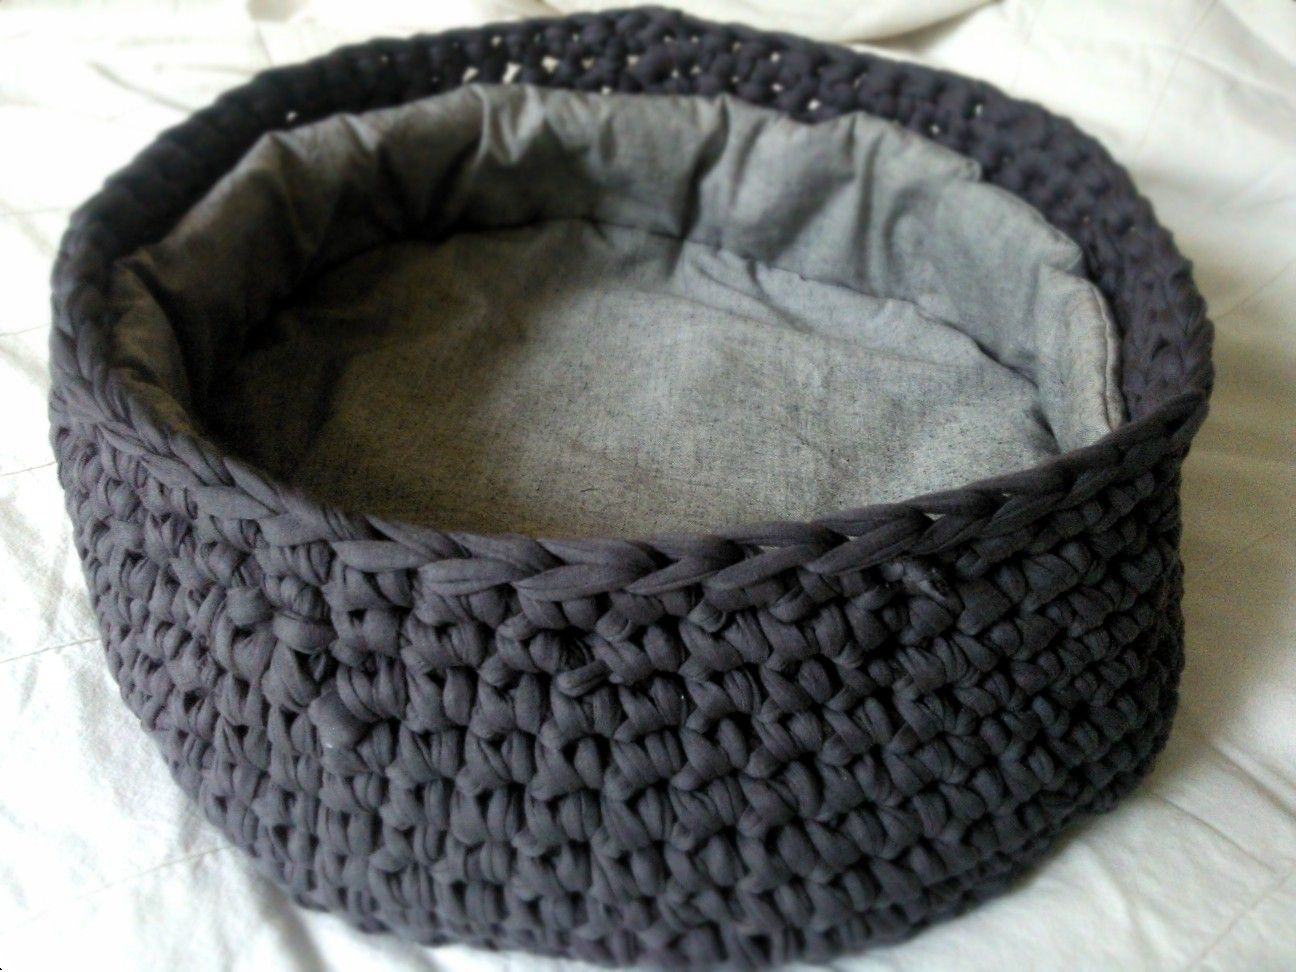 Crochet Pattern For Cat Bed : DIY crochet cat bed with fabric lining & pillow Cat DIYs ...